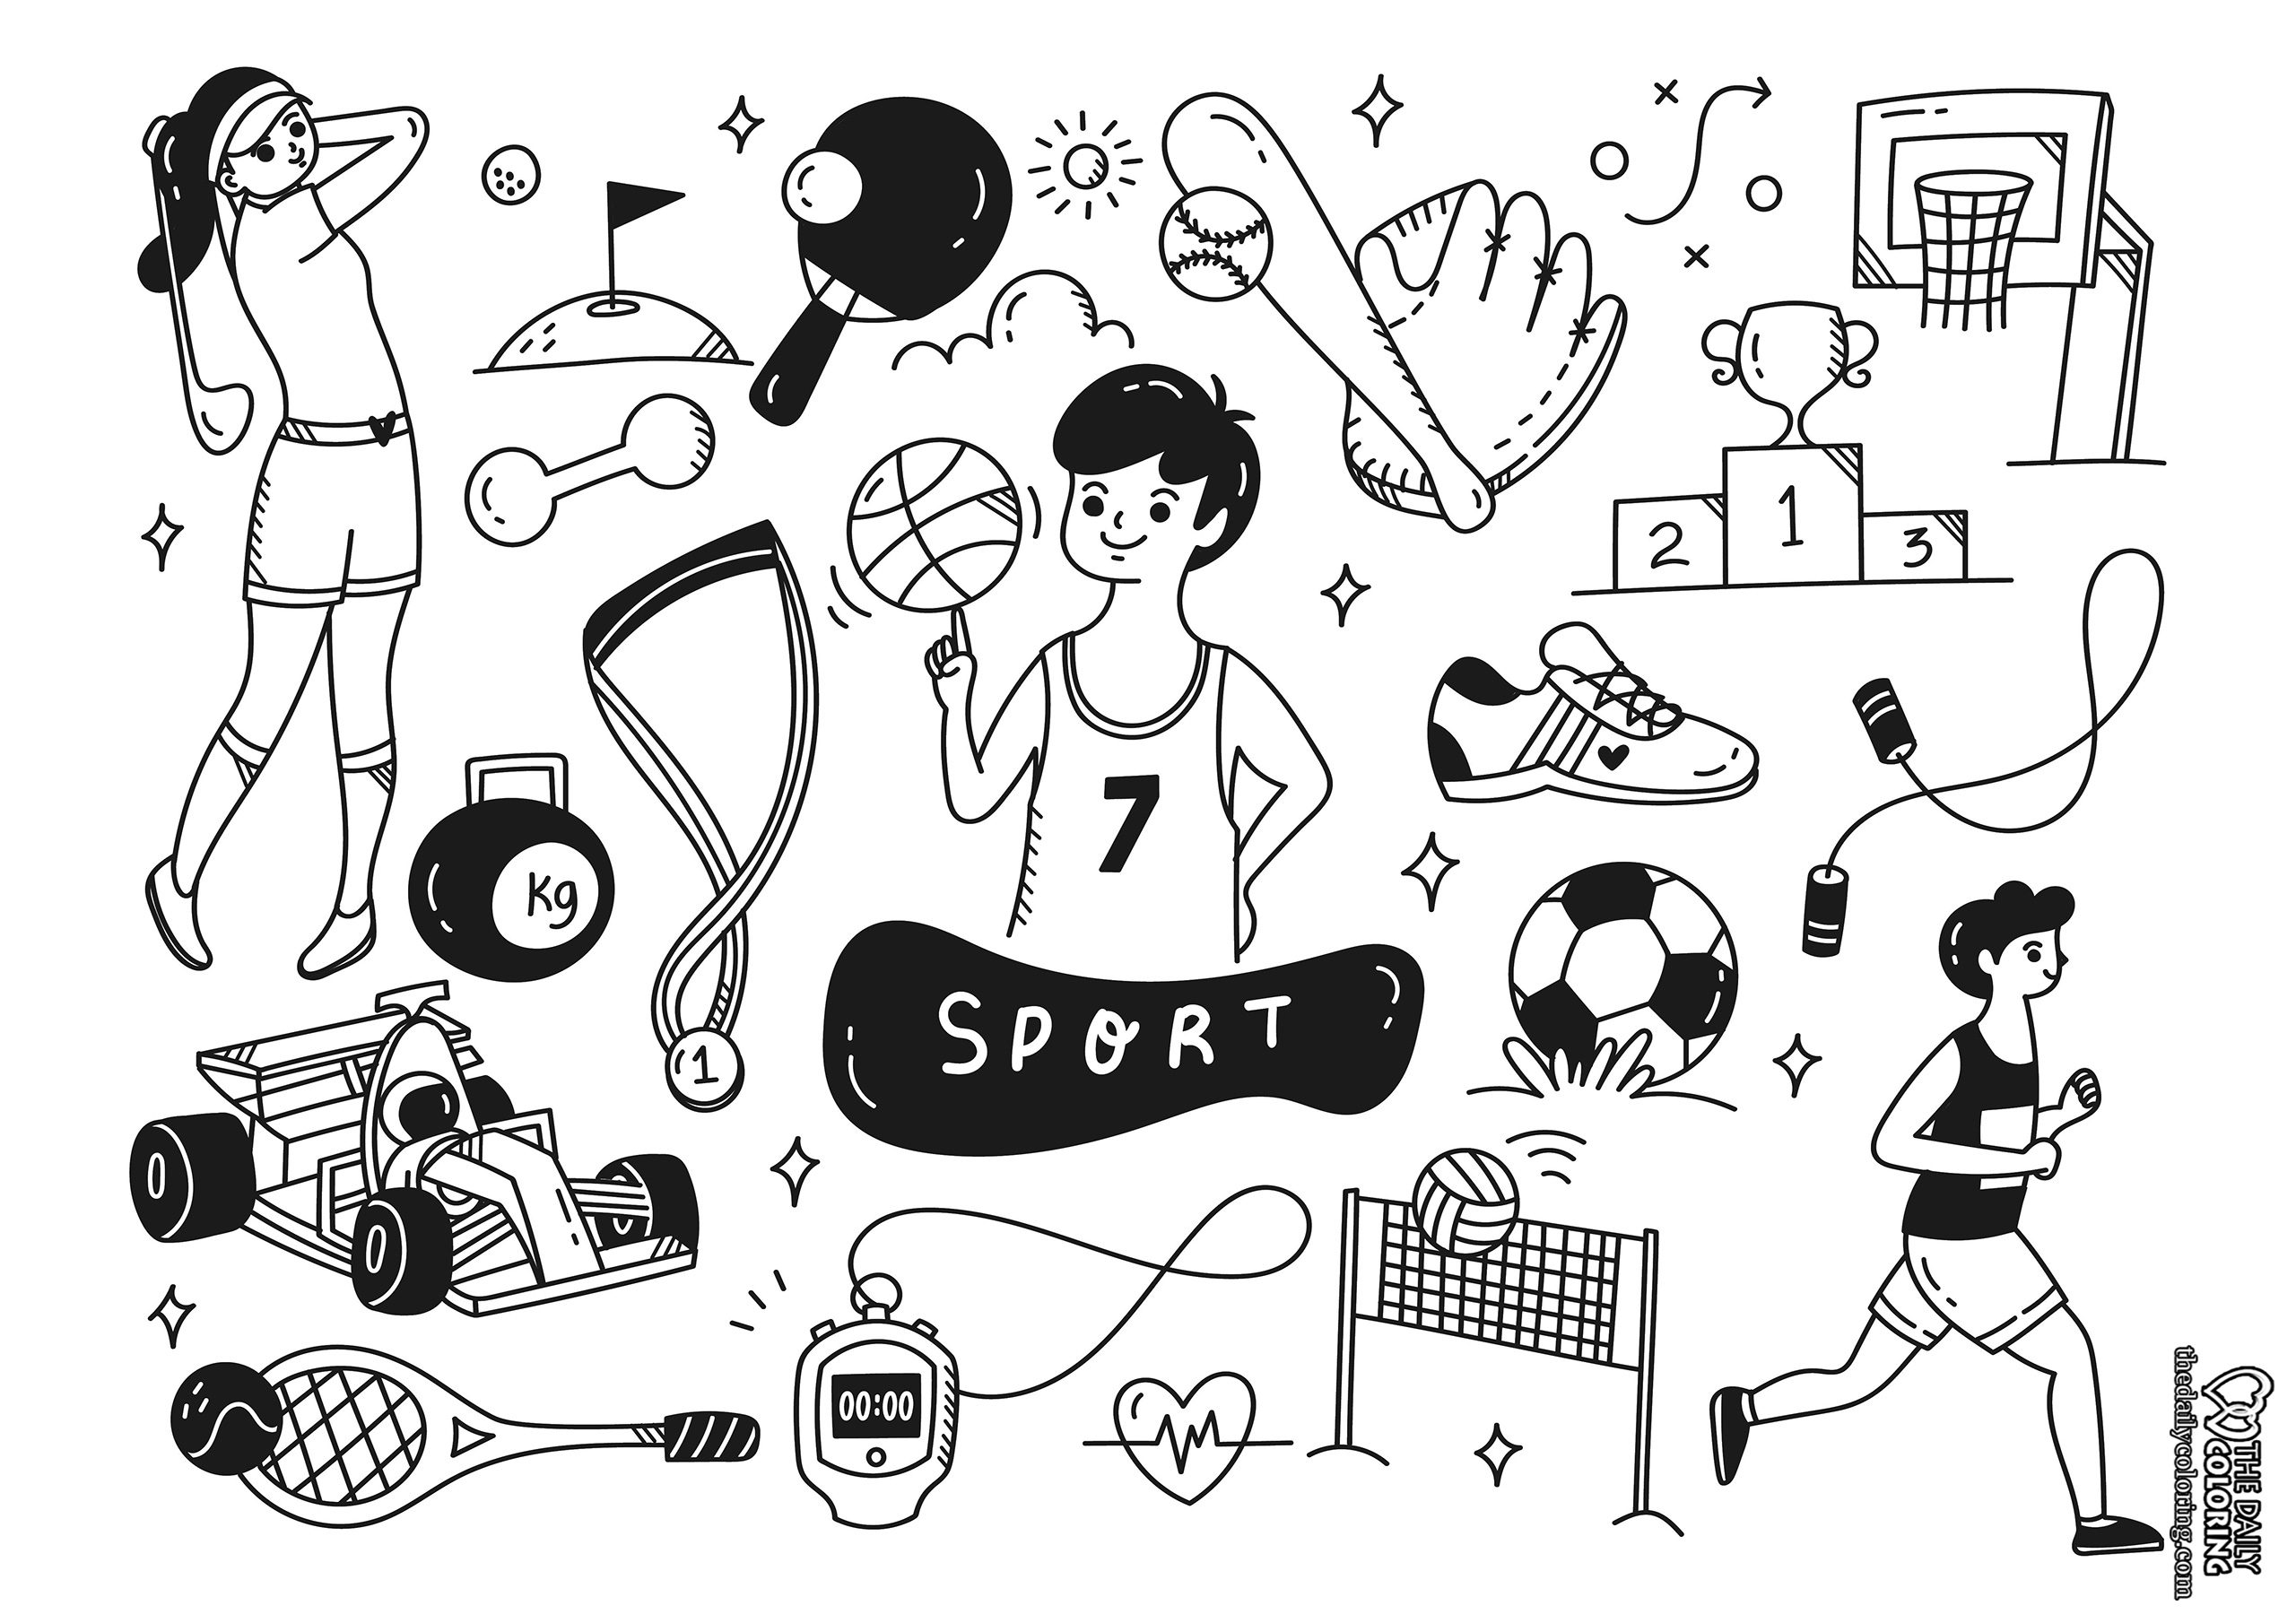 sport-coloring-page